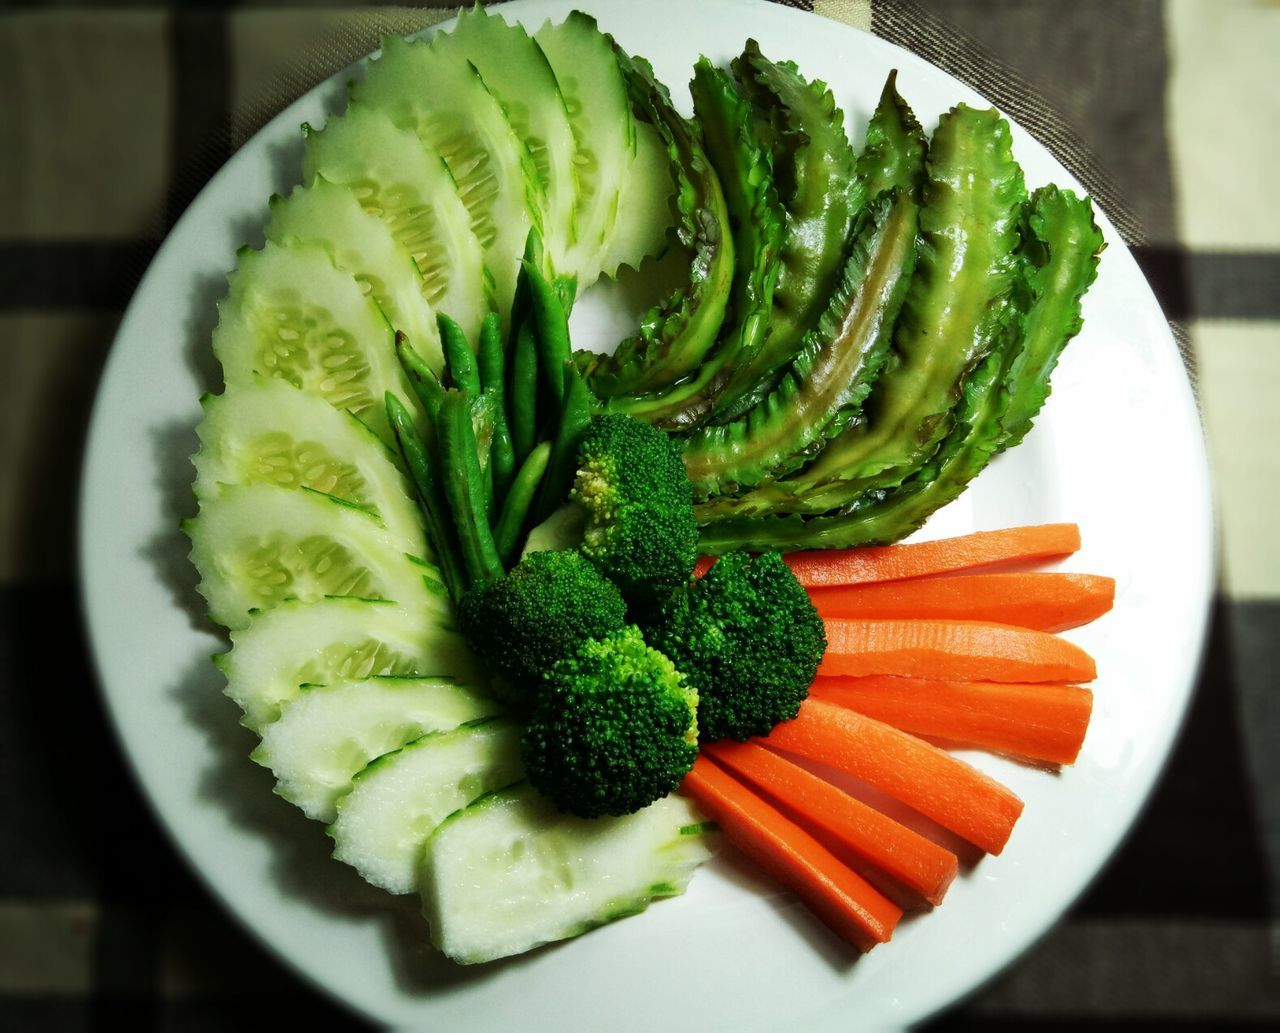 Blanched vegetables Food Healthy Eating I Like Thai Food